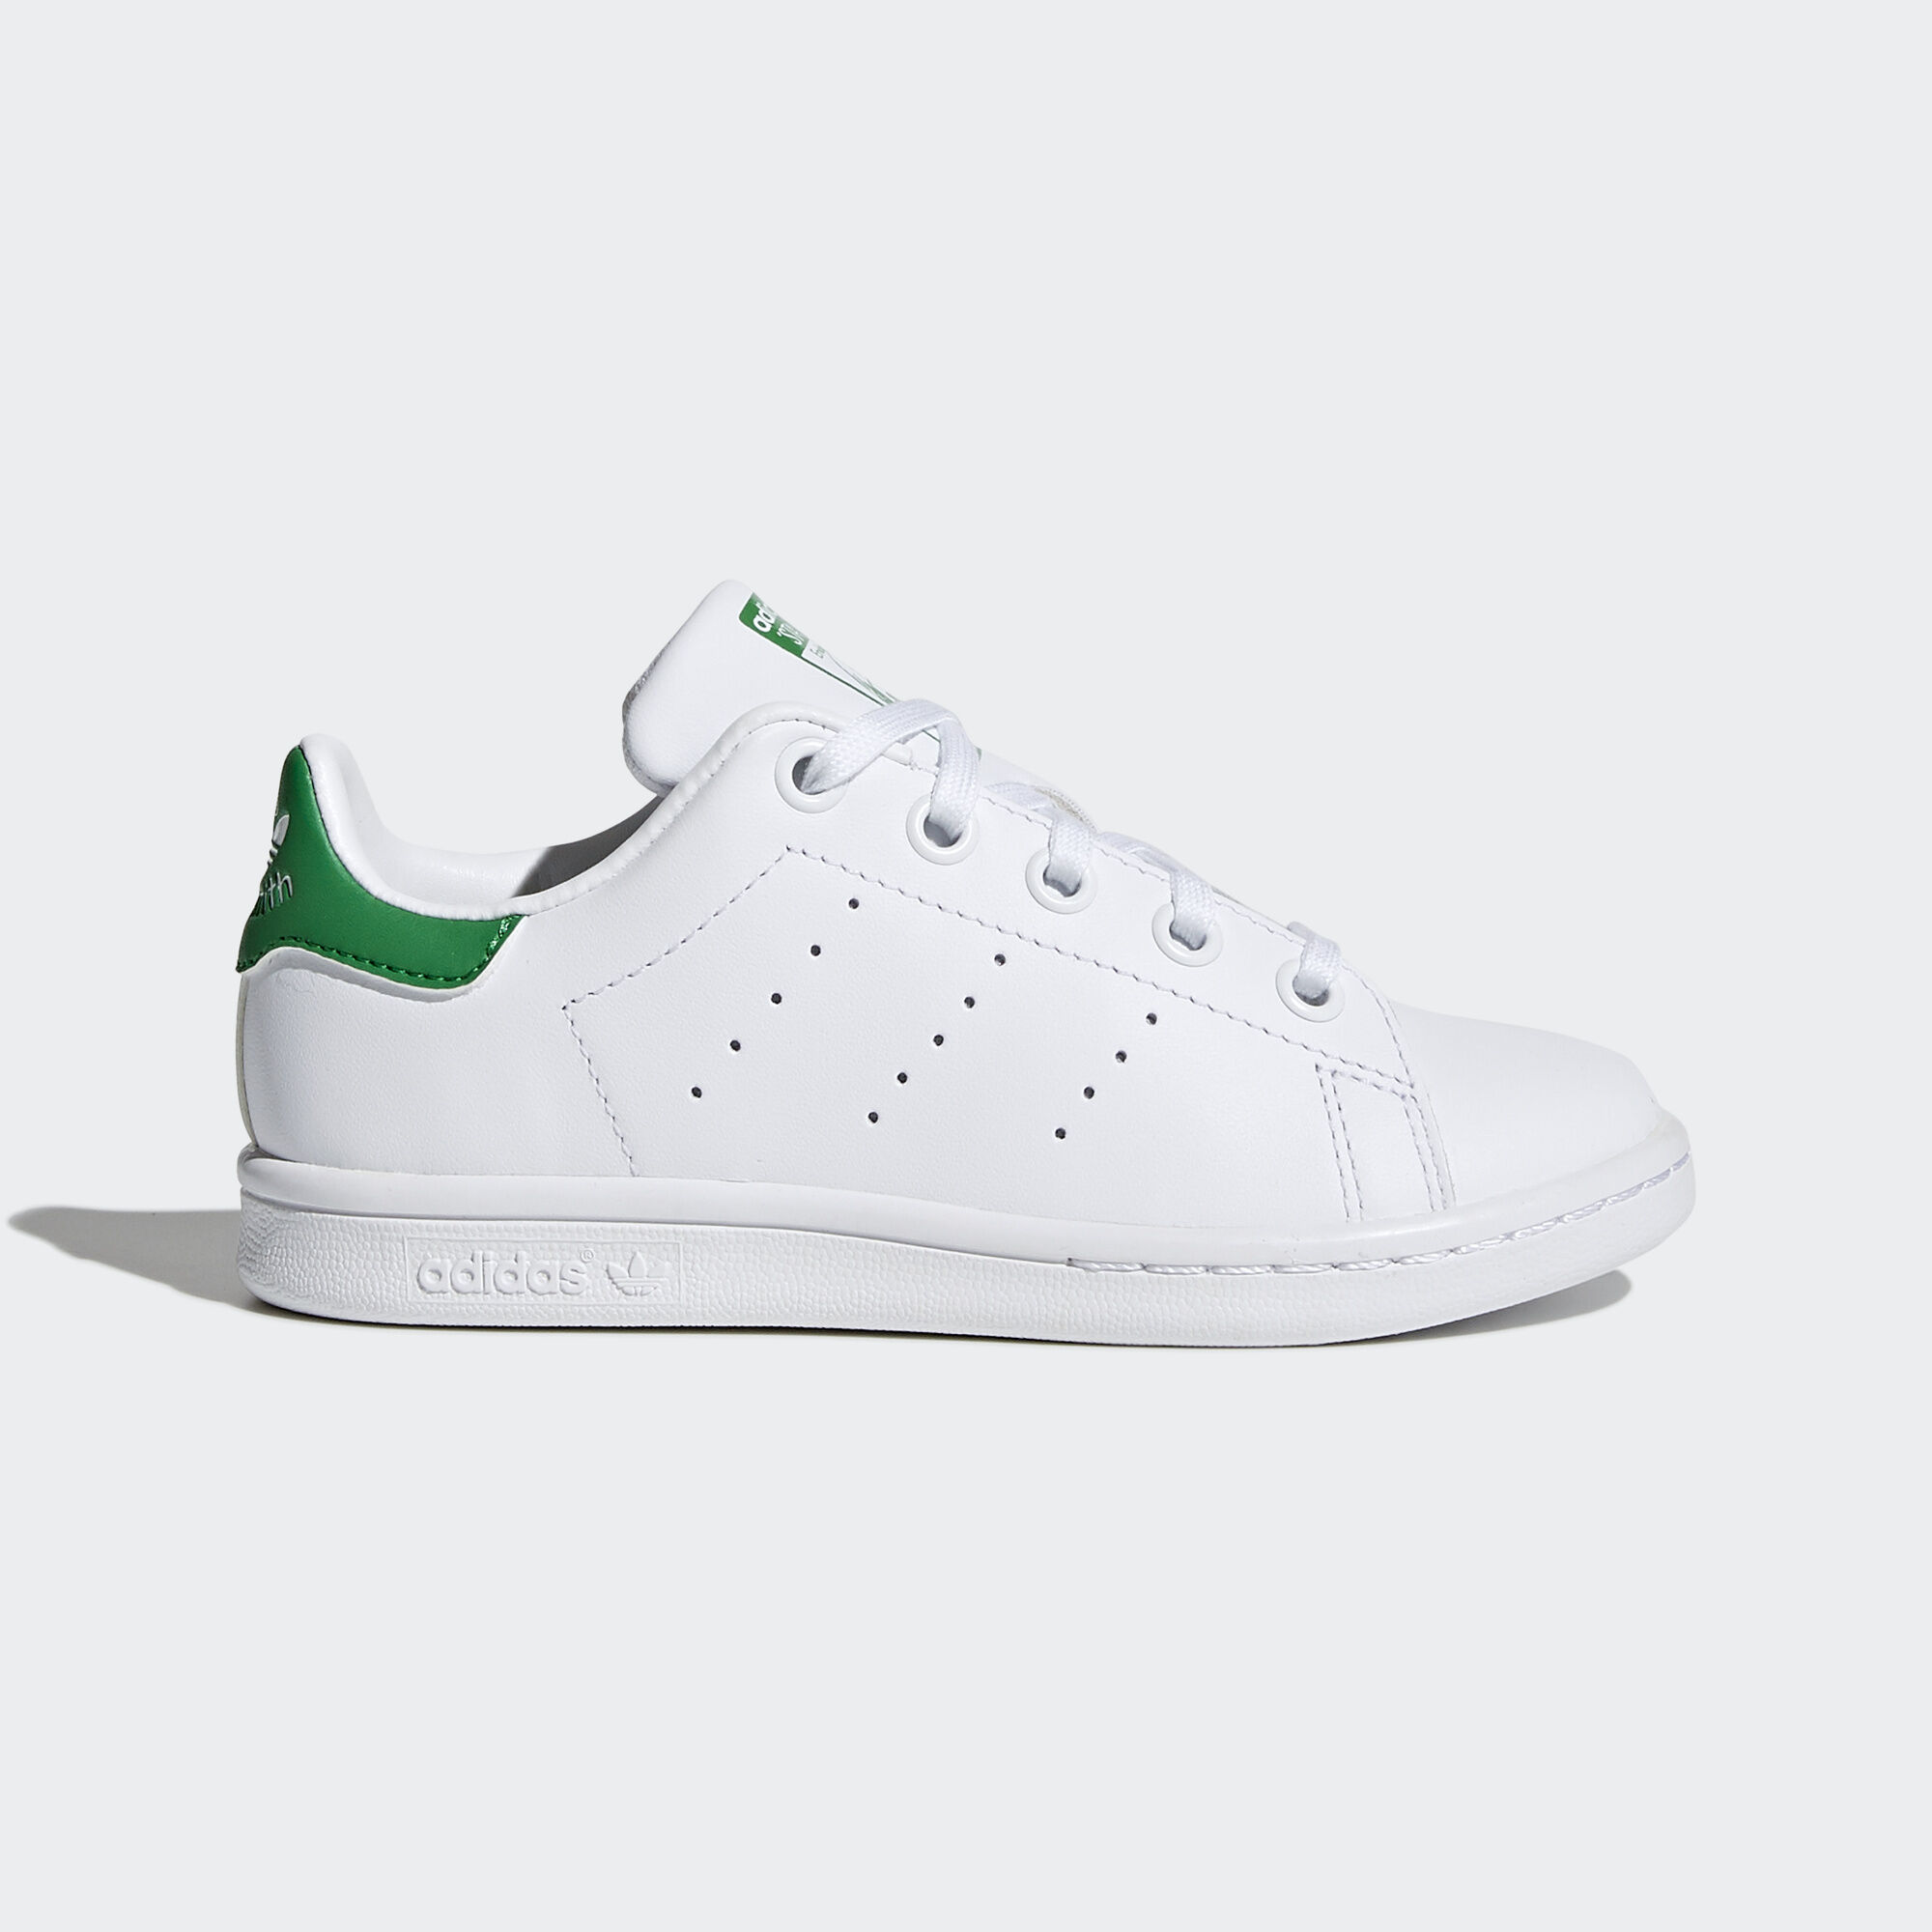 Stan Smith Adidas Classic